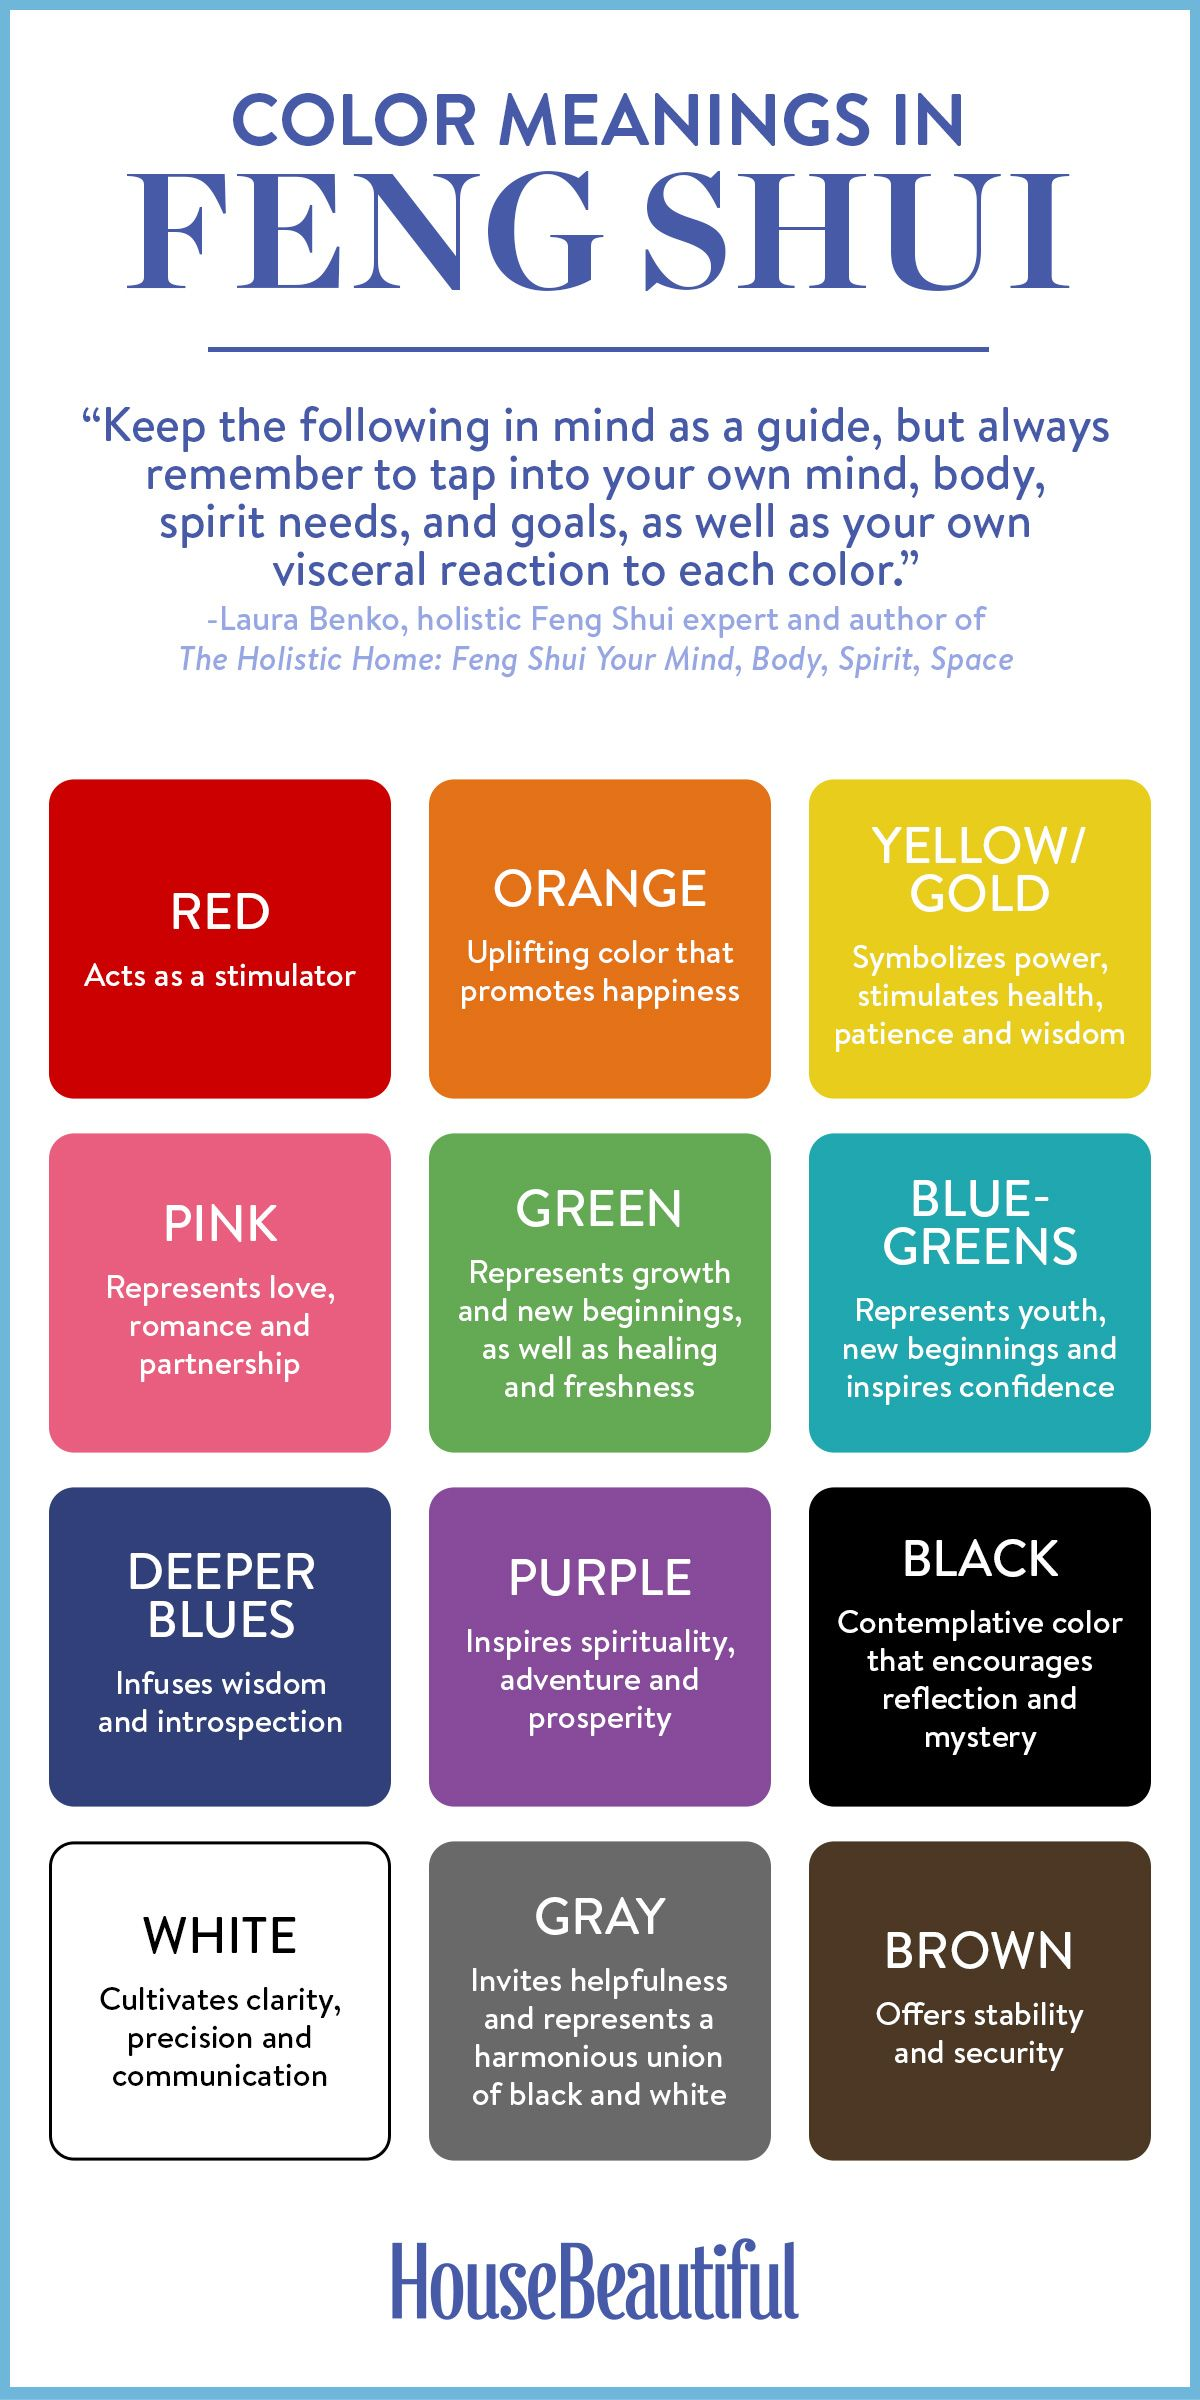 colors for bedrooms feng shui how to choose the color the feng shui way 18513